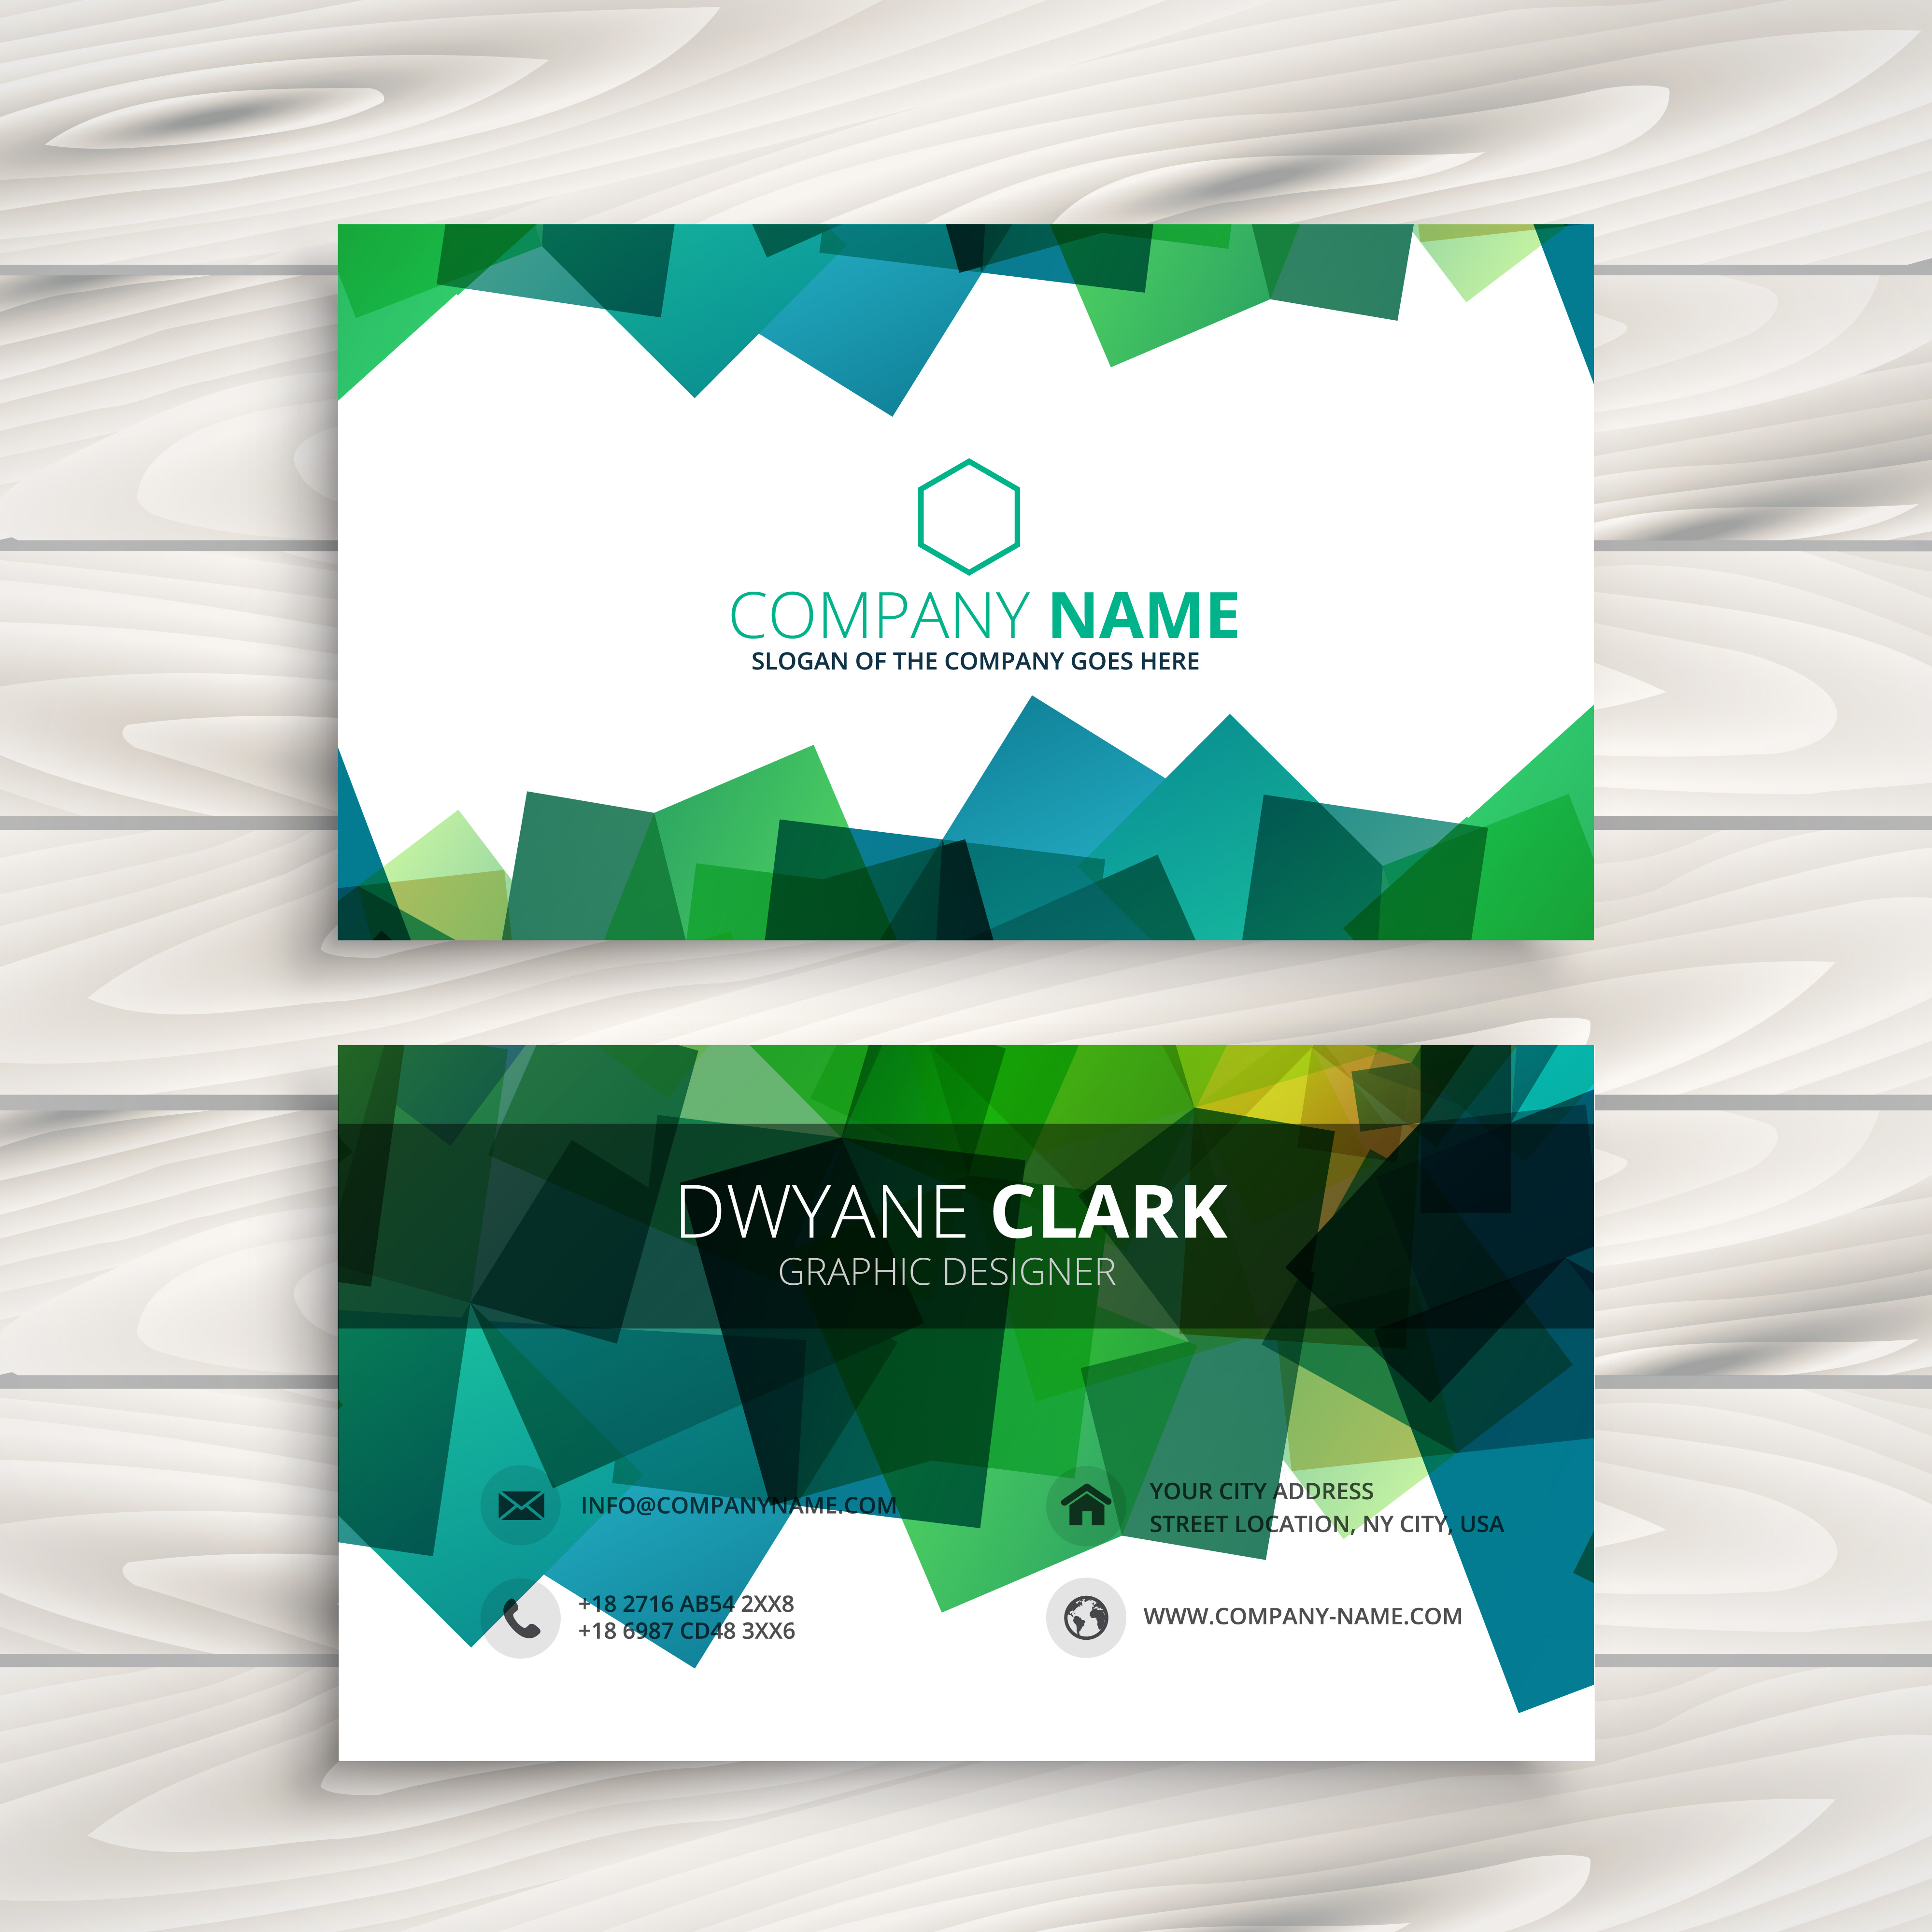 Blue Corporate Stationary Pack By Betty Design: Modern Business Card With Abstract Shapes Template Vector